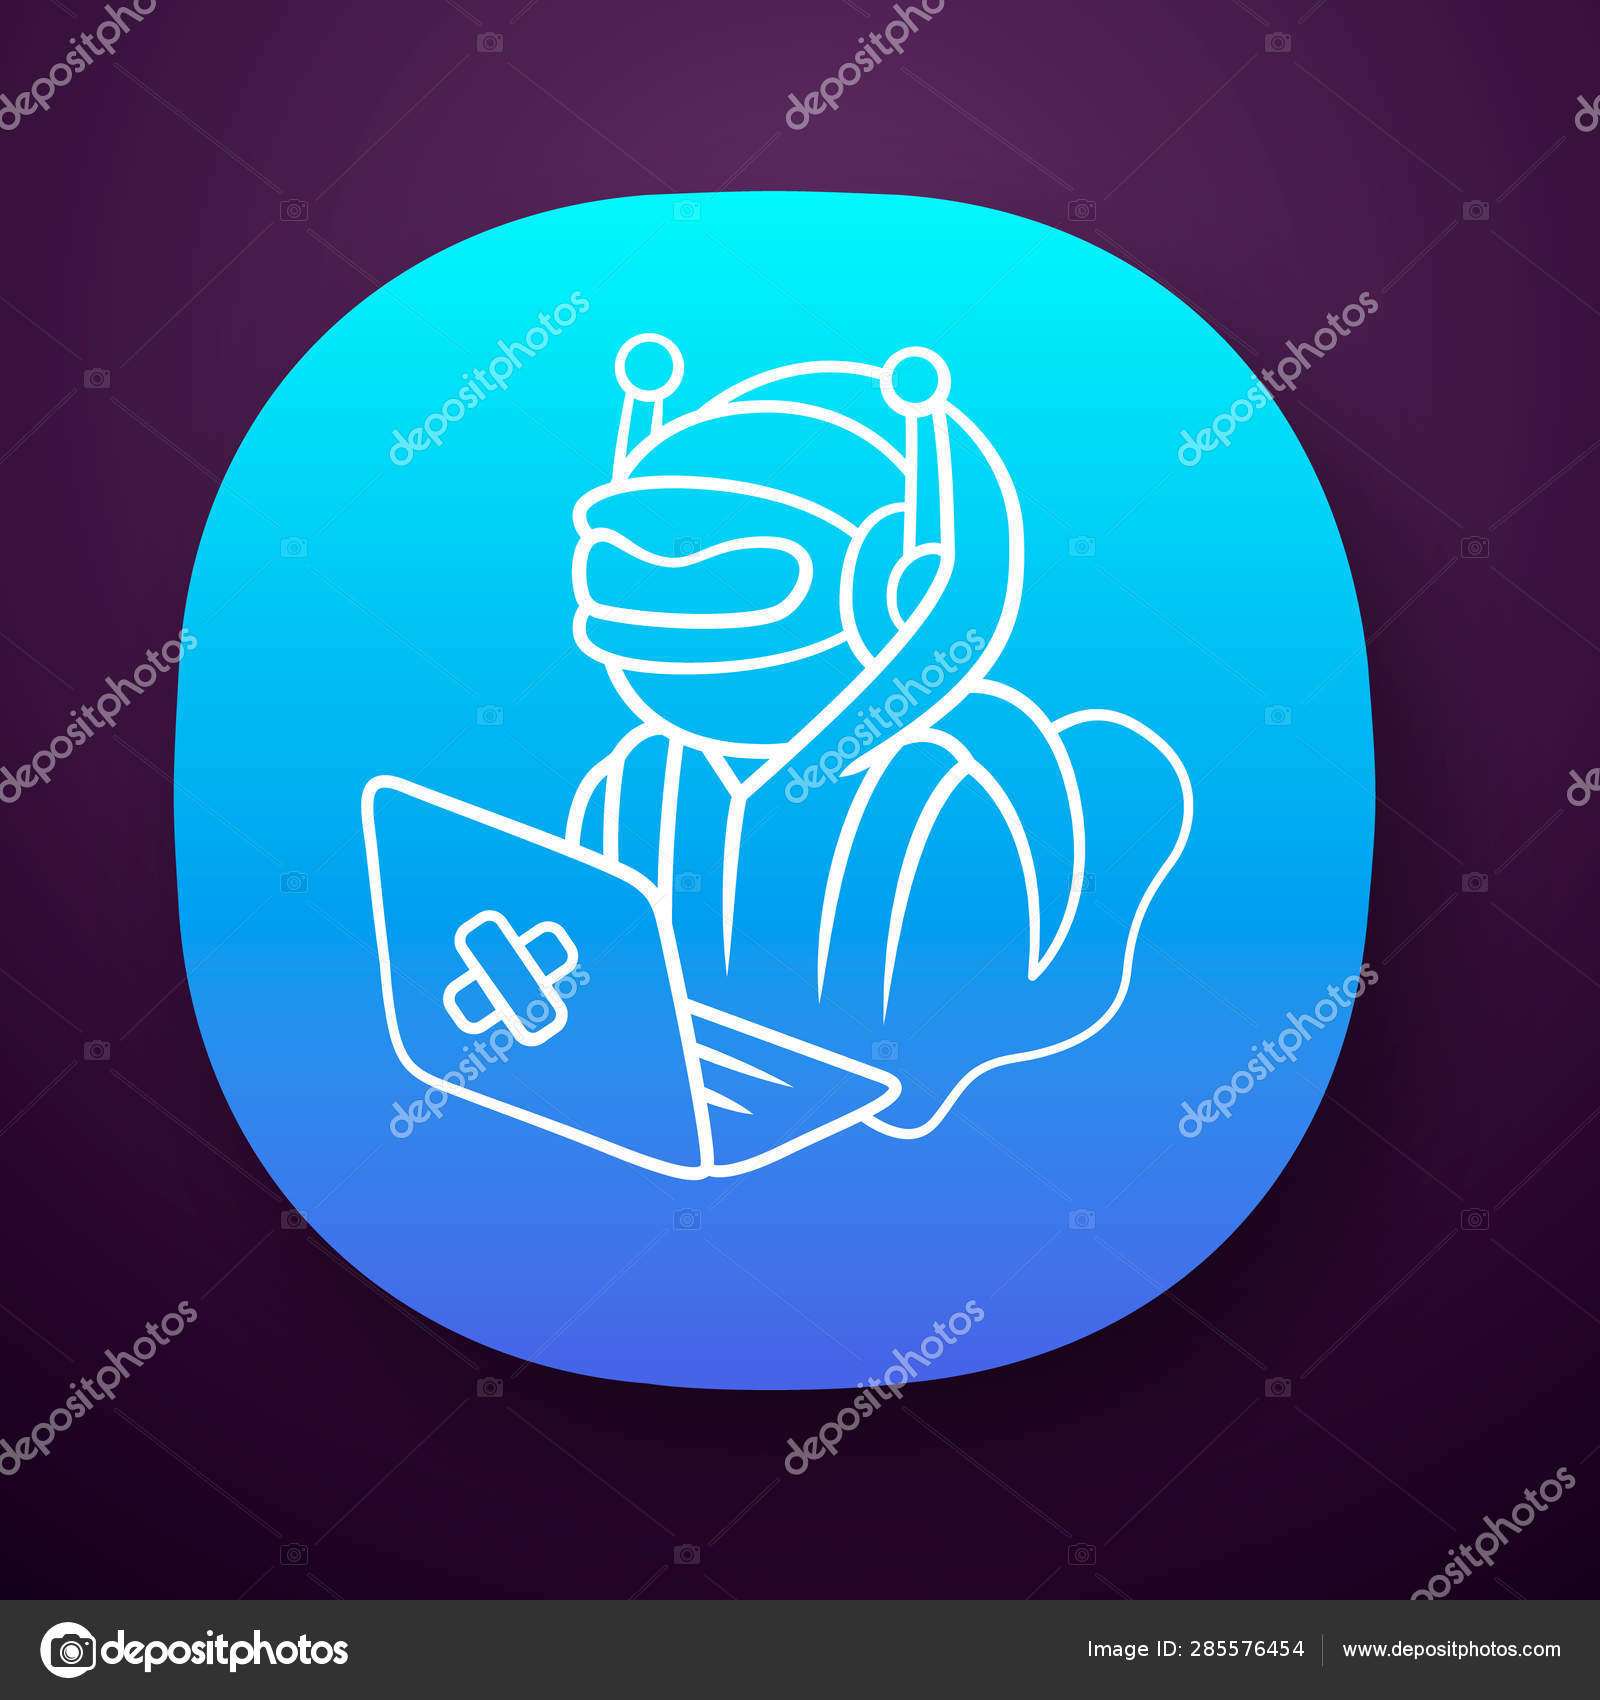 Hacker bot app icon  Virus robot  Cyber pirate attack, crime